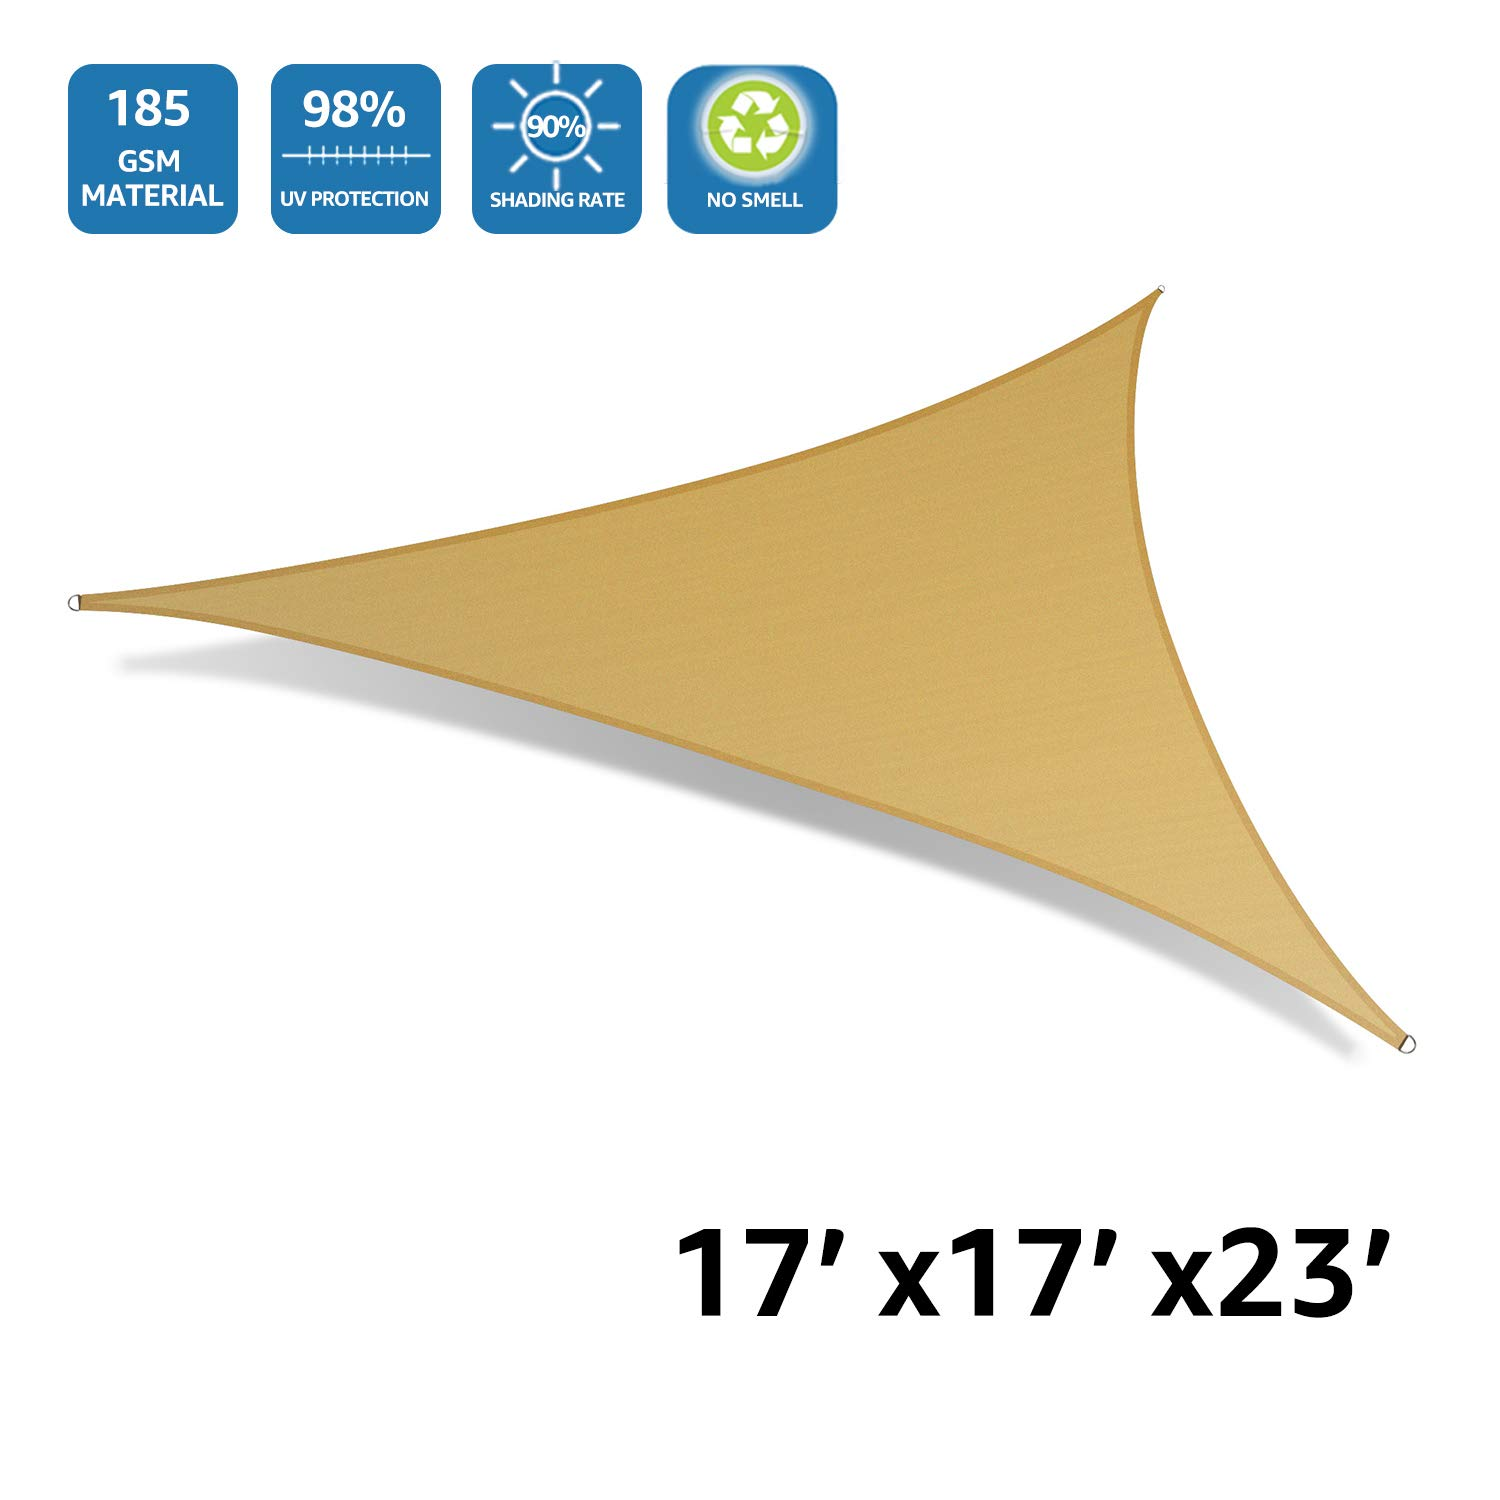 DOEWORKS 17'x17'x23' Right Triangle UV Block Sun Shade Sail Canopy, Shade for Patio Outdoor Lawn Garden, Sand